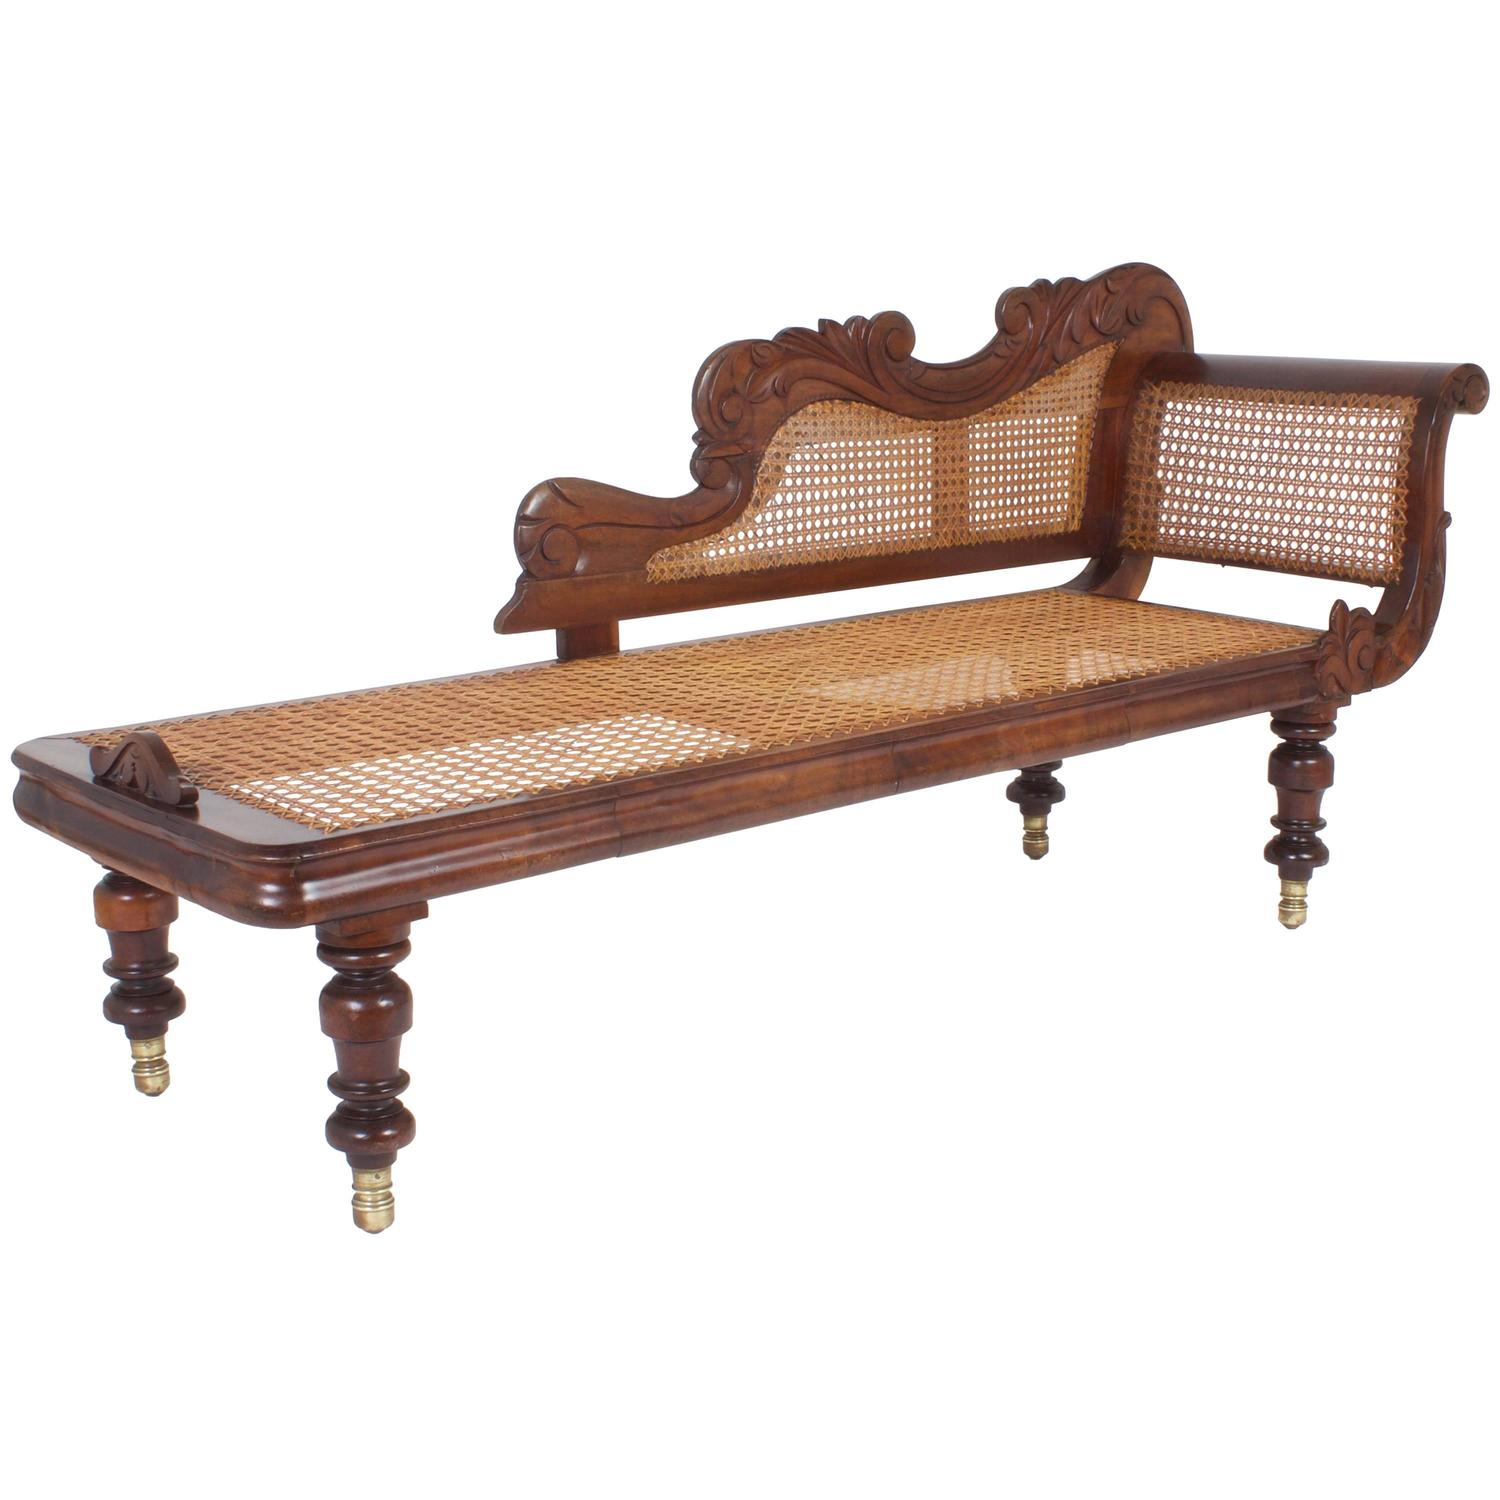 British colonial mahogany antique chaise longue at 1stdibs for Antique chaise longues